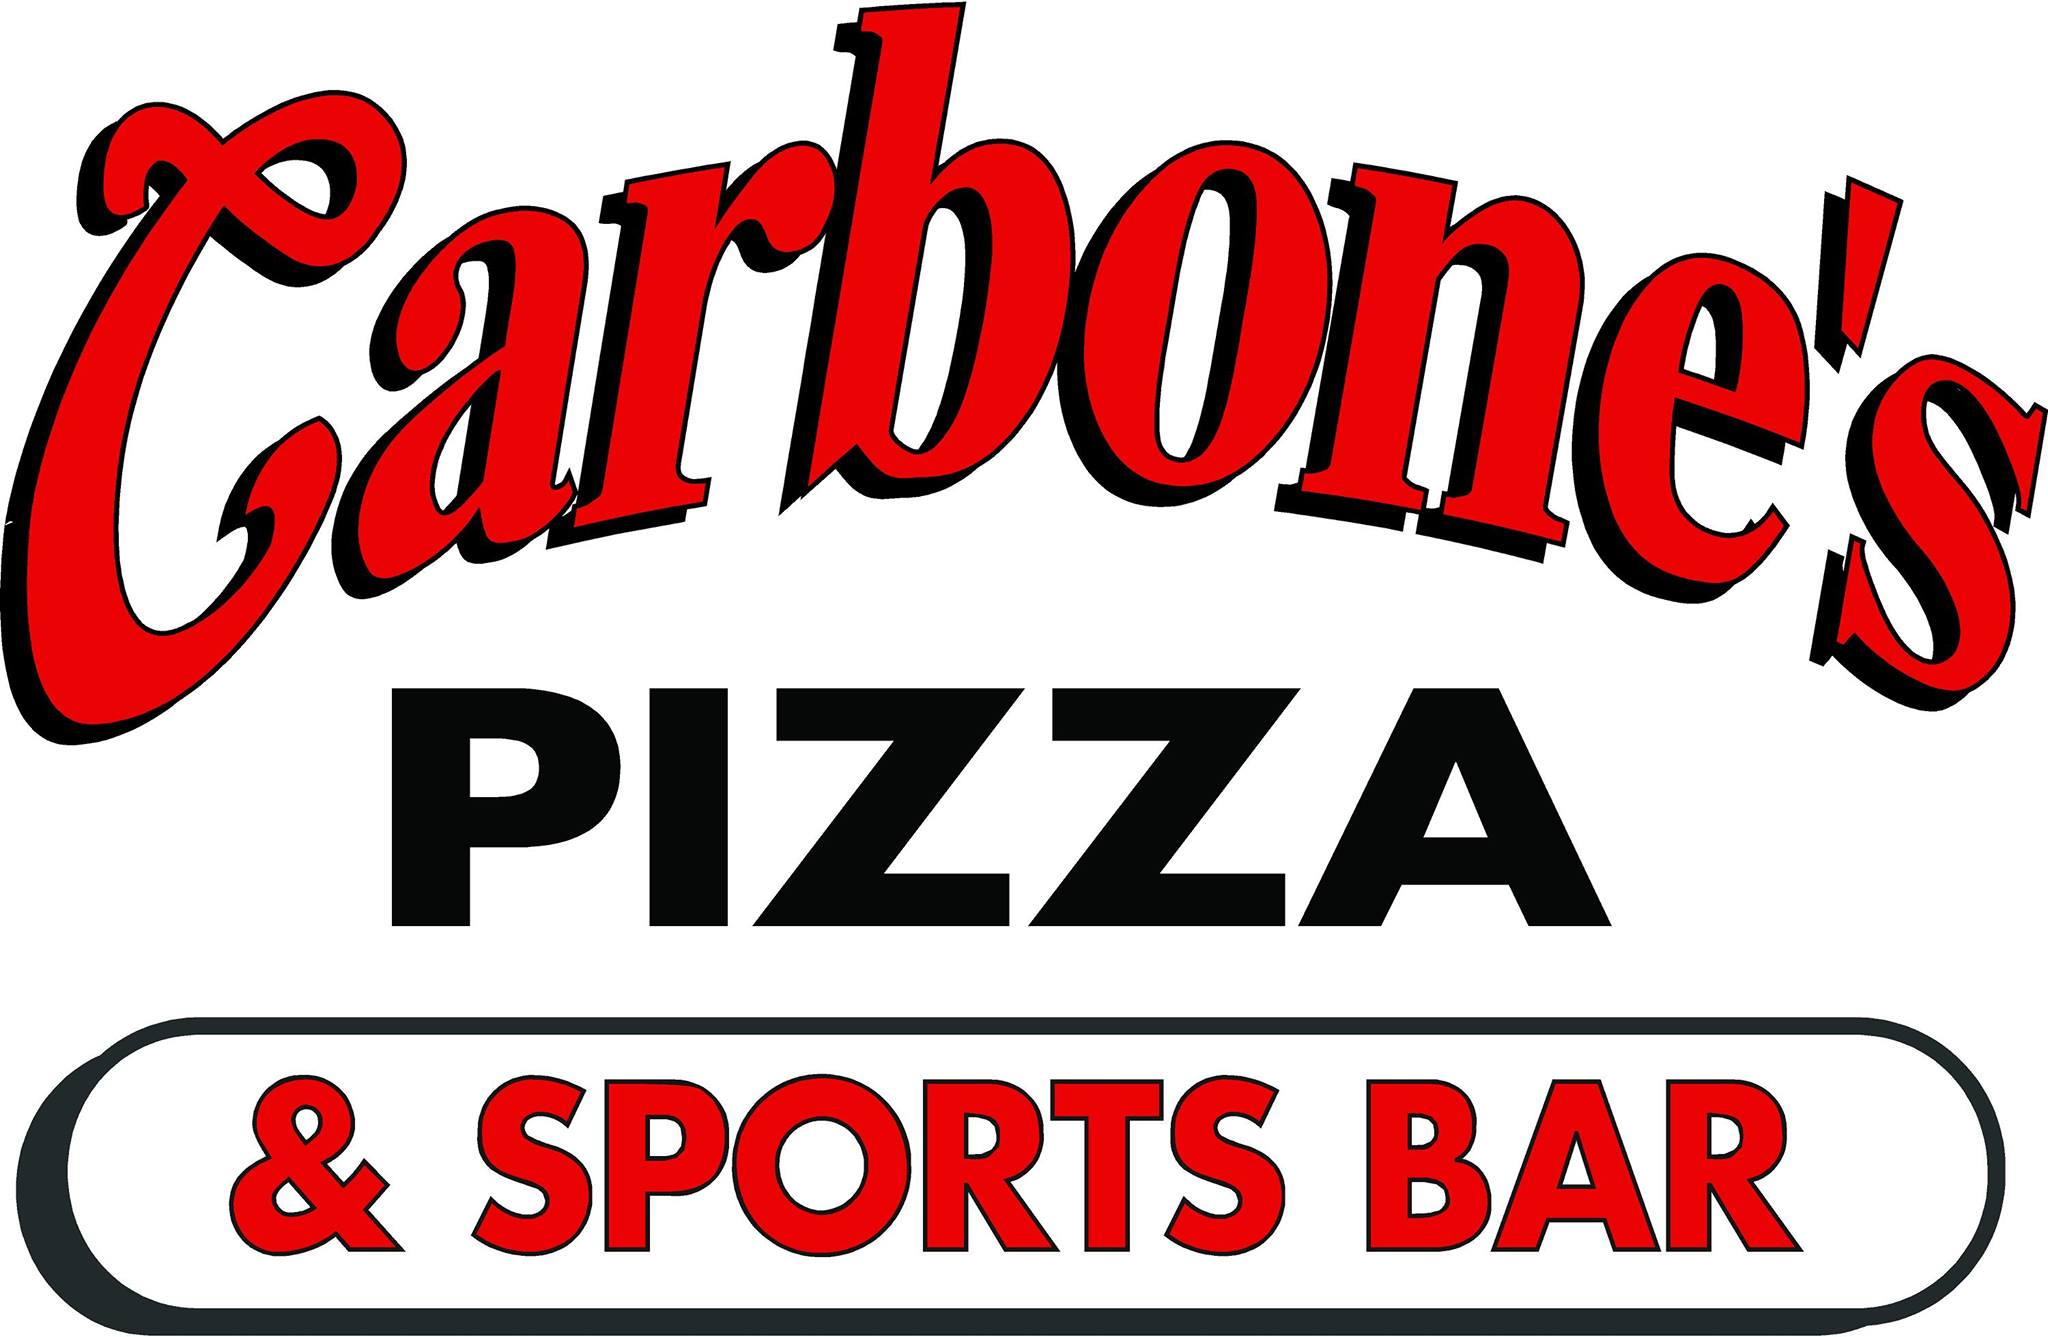 Carbone's Pizza & Sports Bar